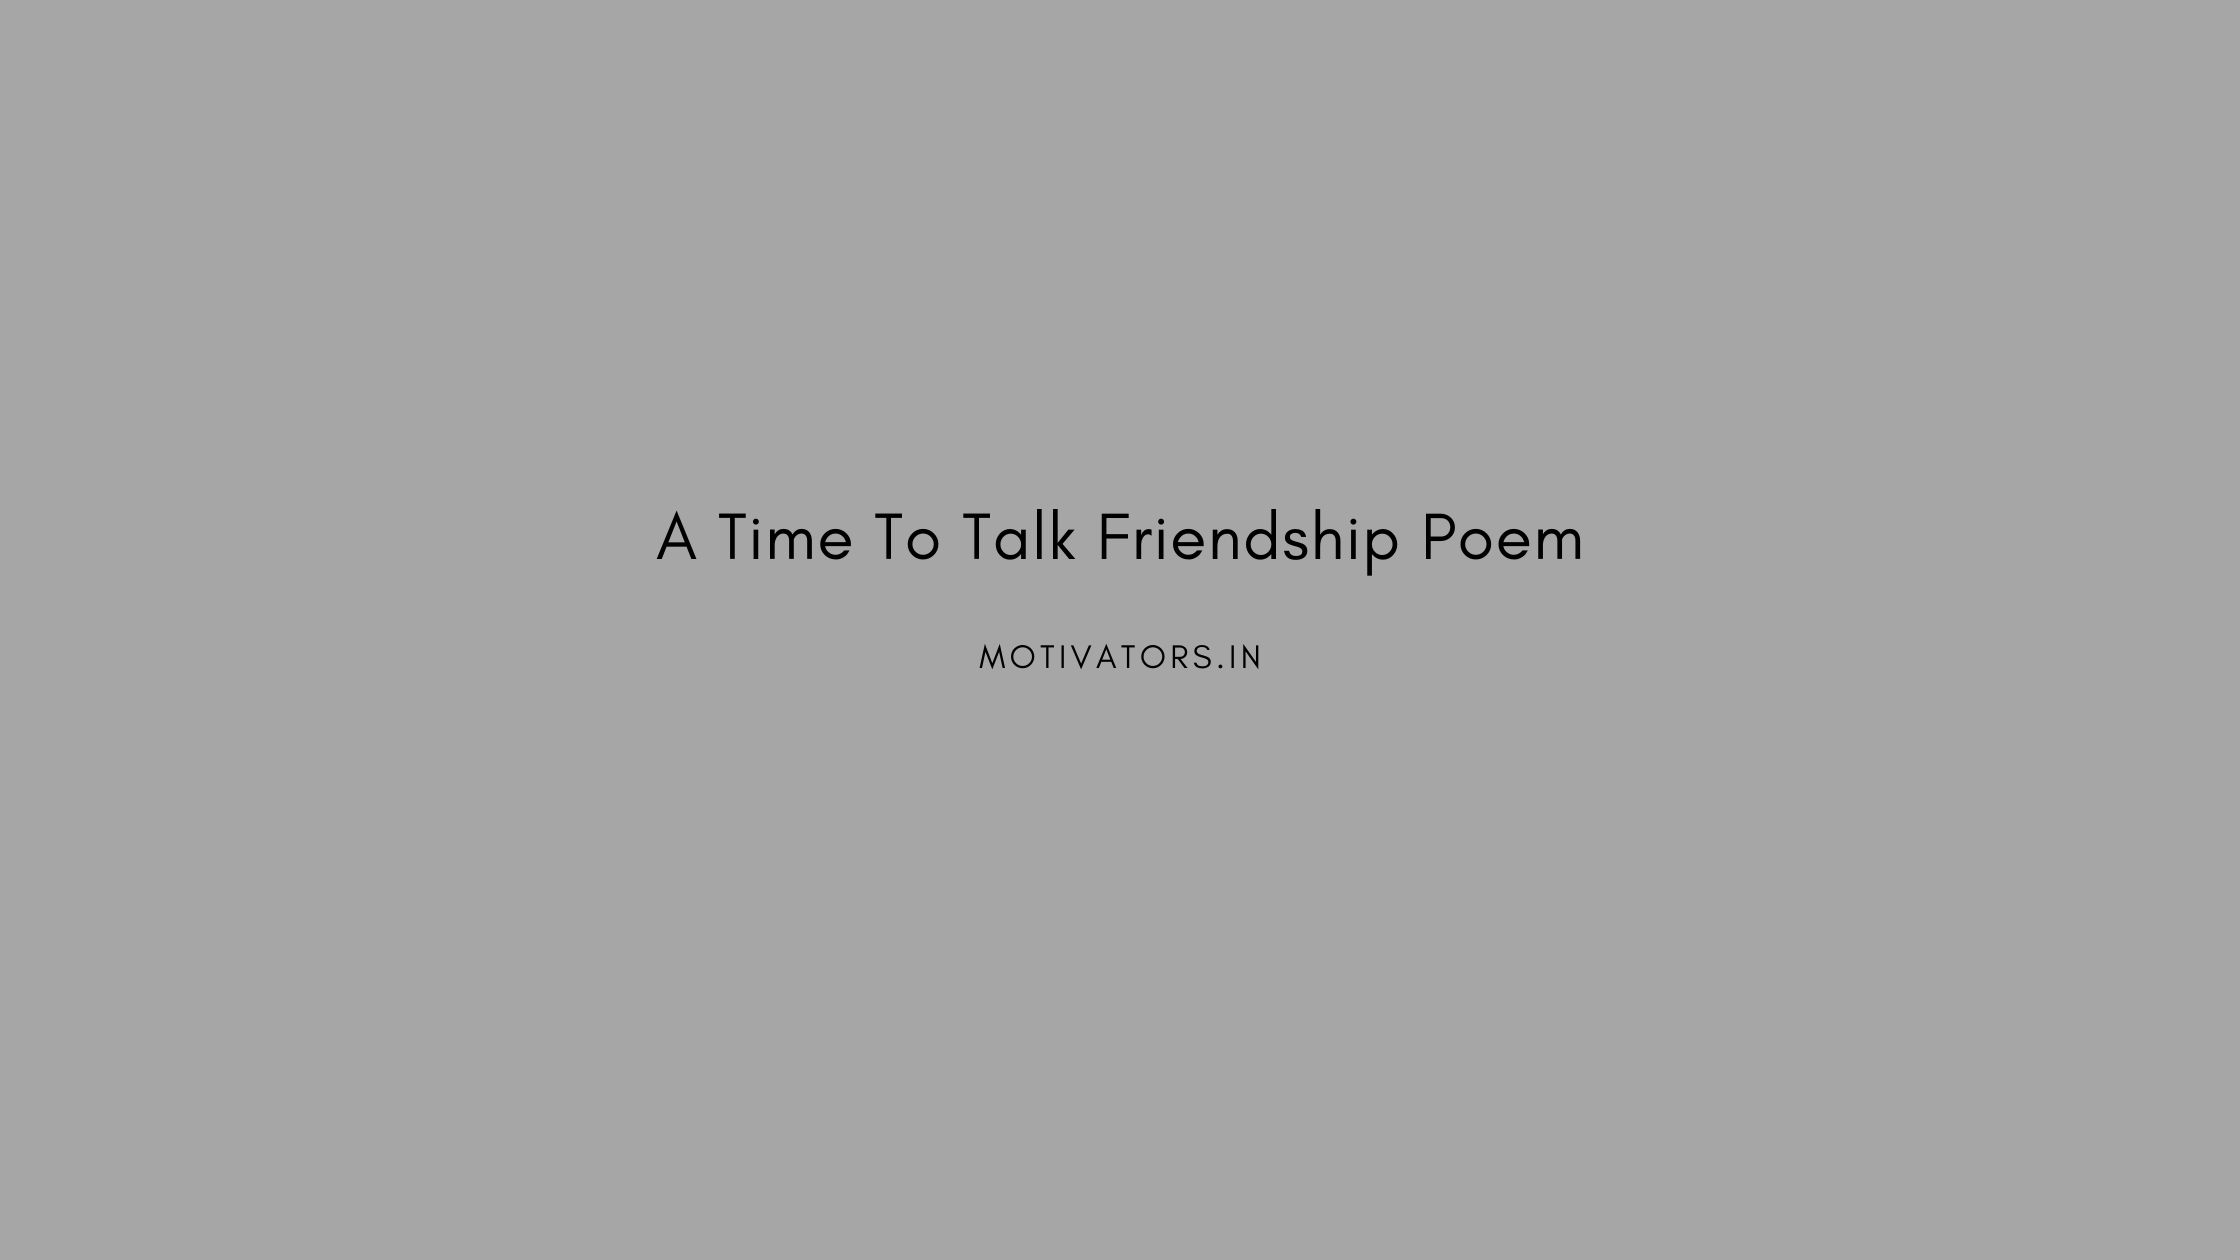 A Time To Talk Friendship Poem